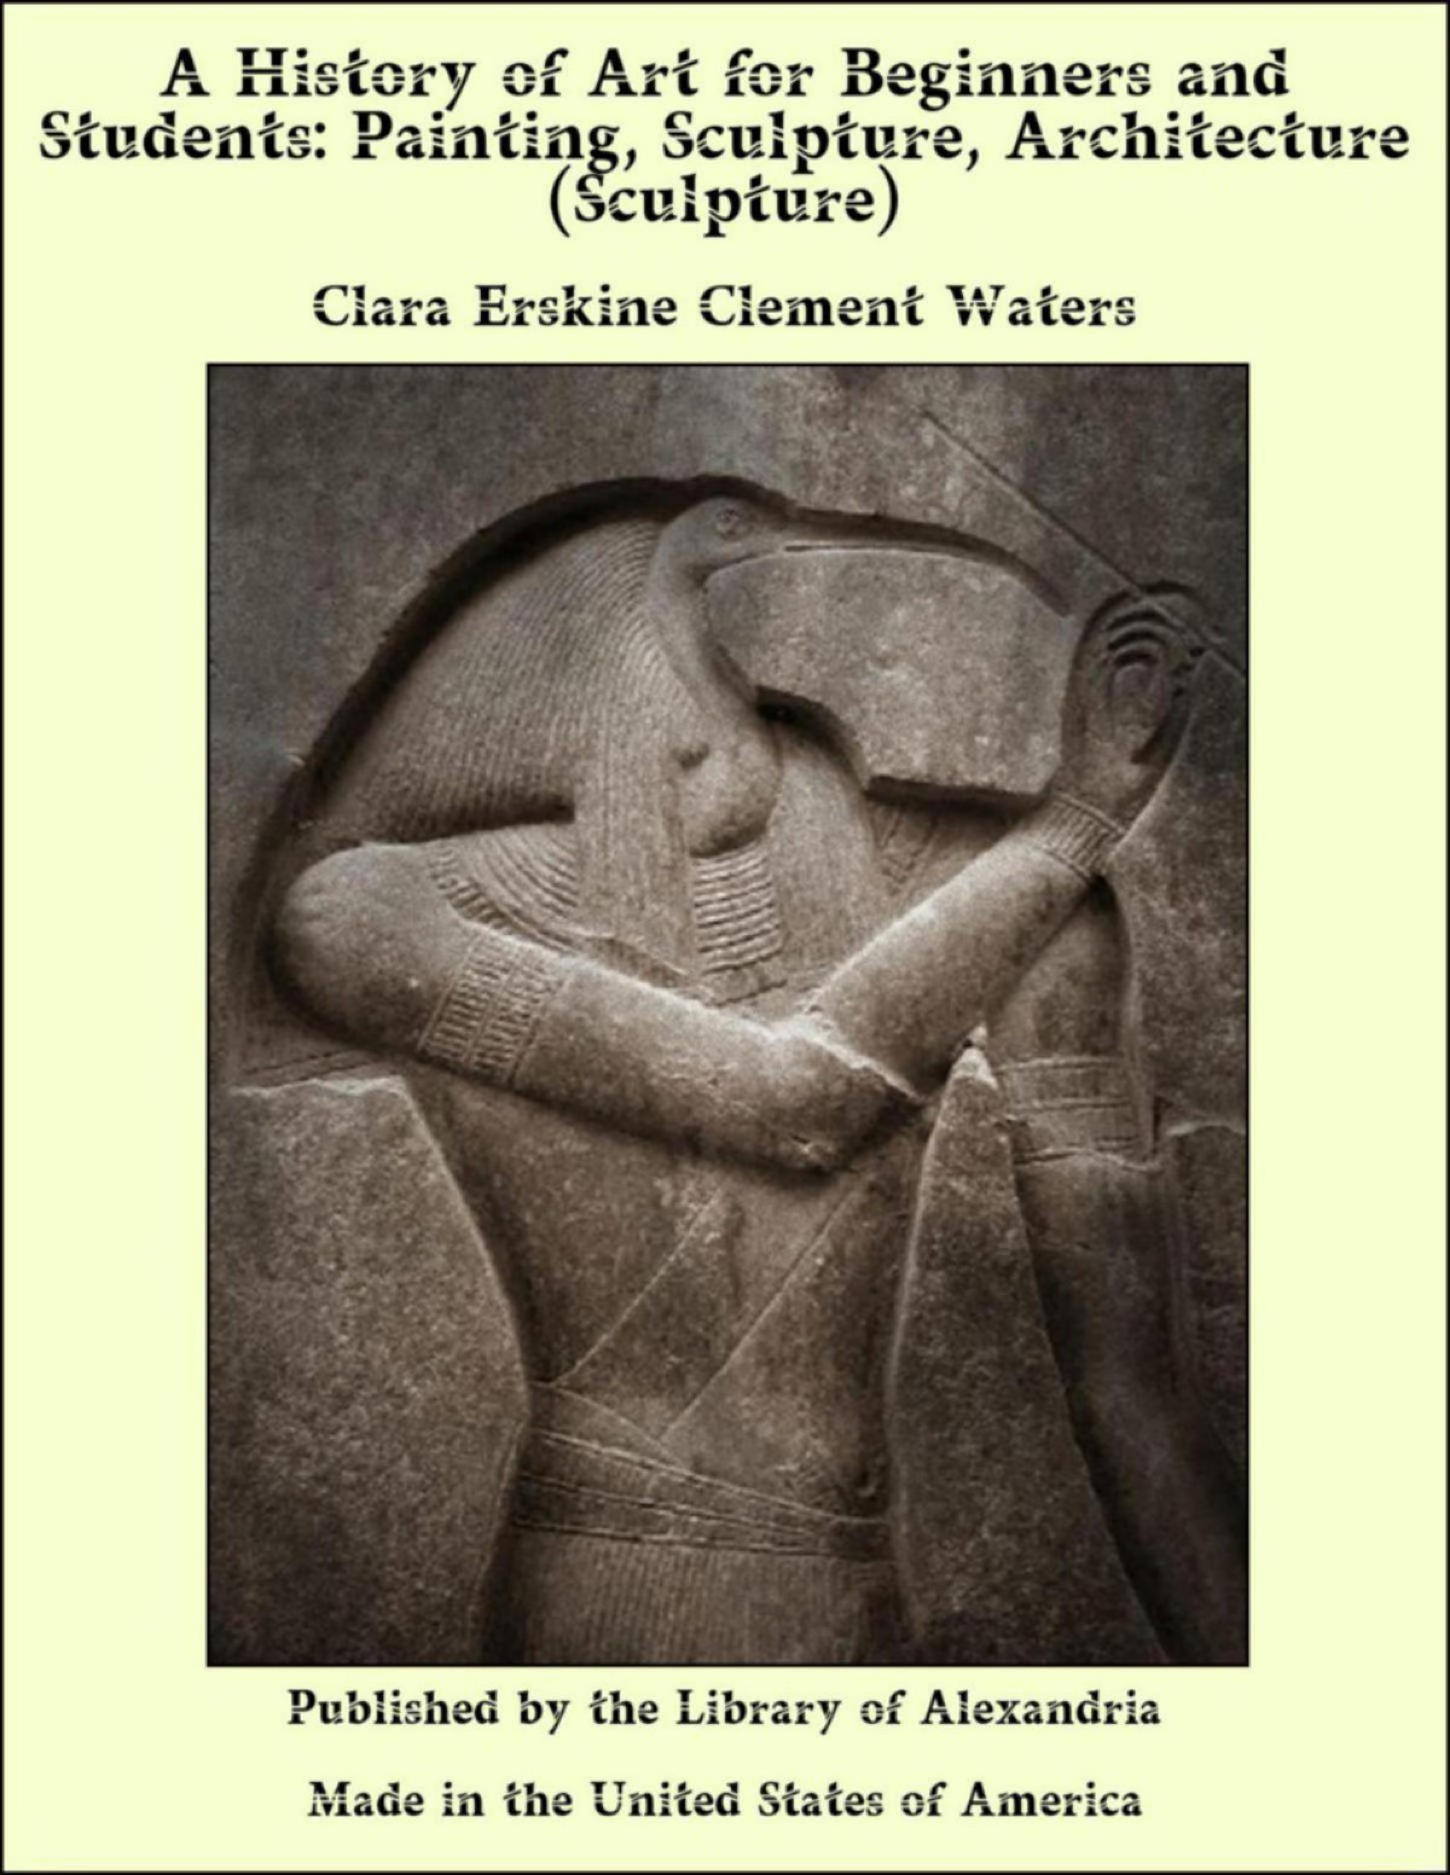 Clara Erskine Clement - A History of Art for Beginners and Students: Painting, Sculpture, Architecture (Sculpture)